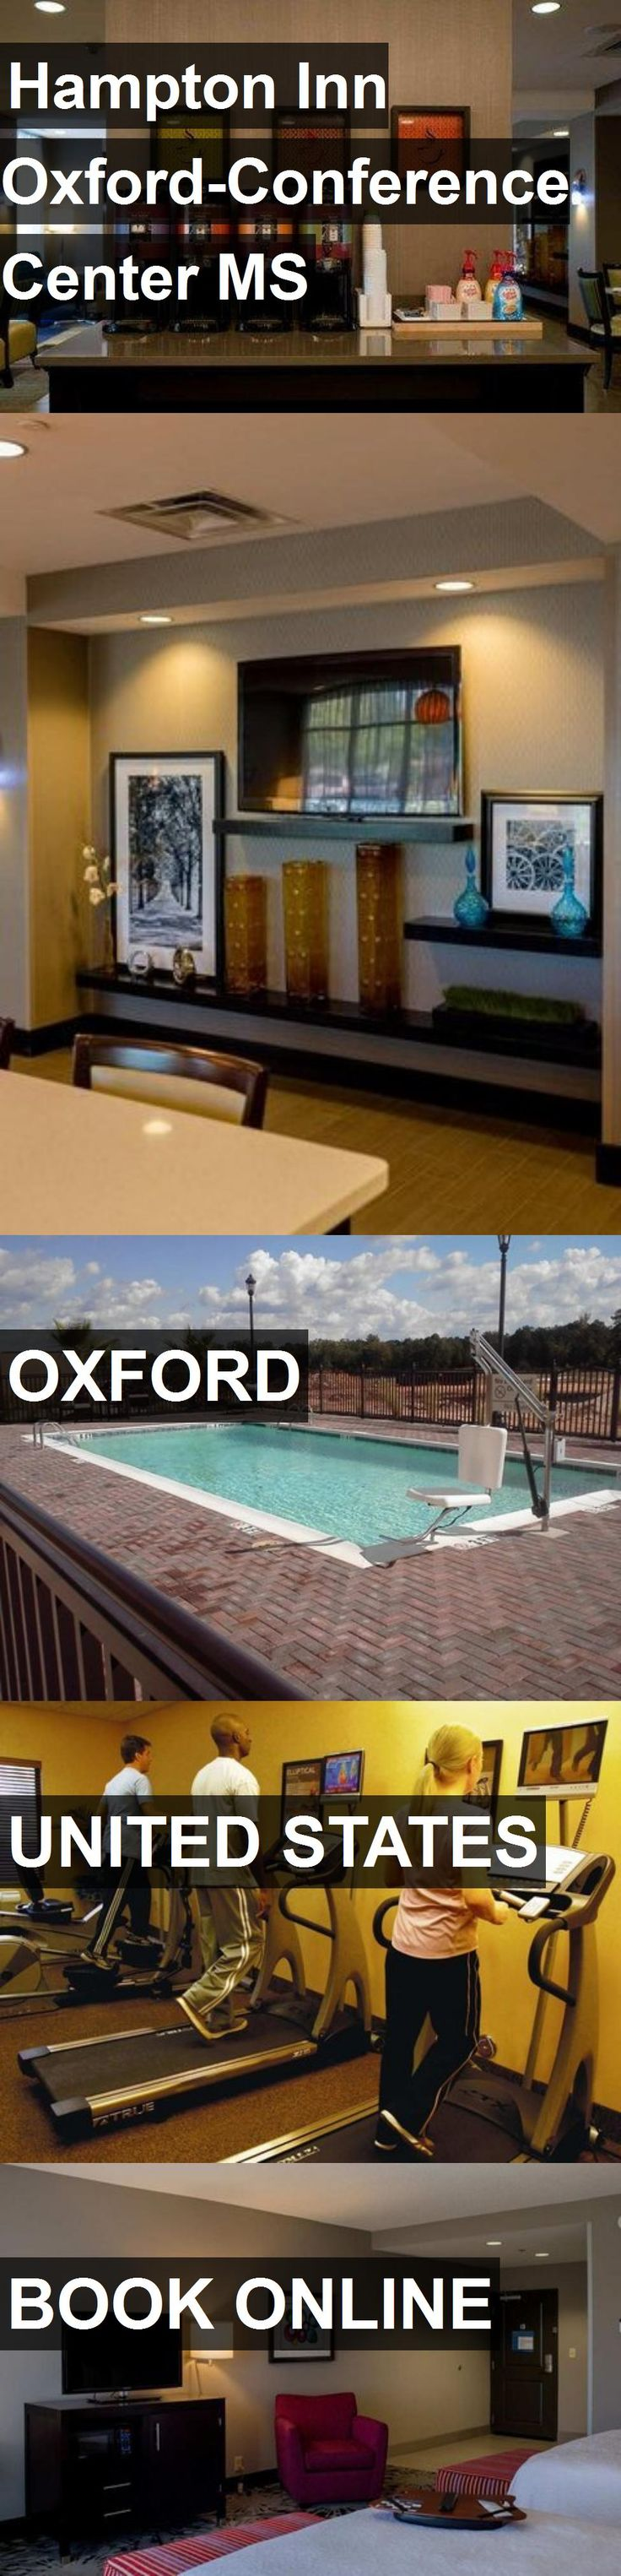 Hotel Hampton Inn Oxford-Conference Center MS in Oxford, United States. For more information, photos, reviews and best prices please follow the link. #UnitedStates #Oxford #travel #vacation #hotel